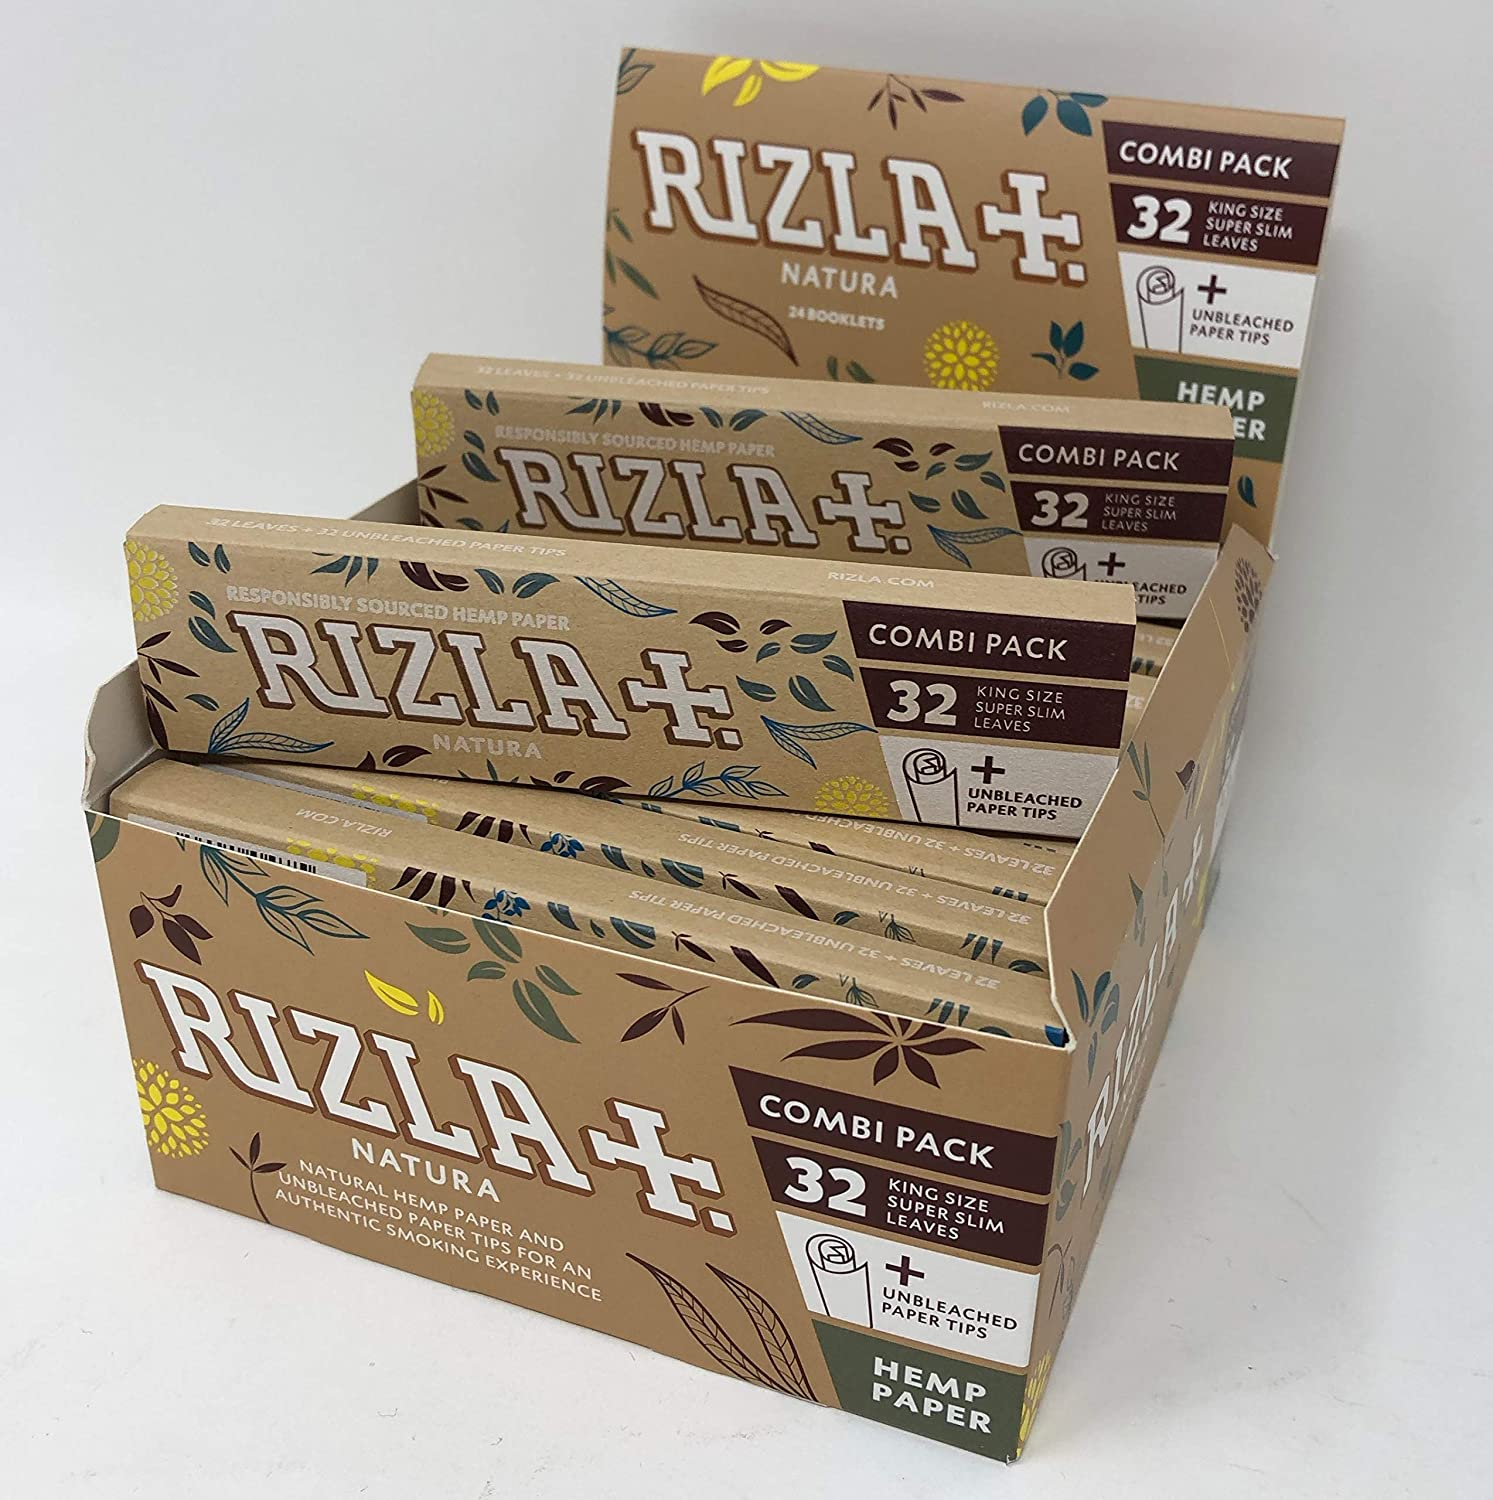 10 Packs Rizla King Size Natura Combi Pack with Rizlas First Roach Tips